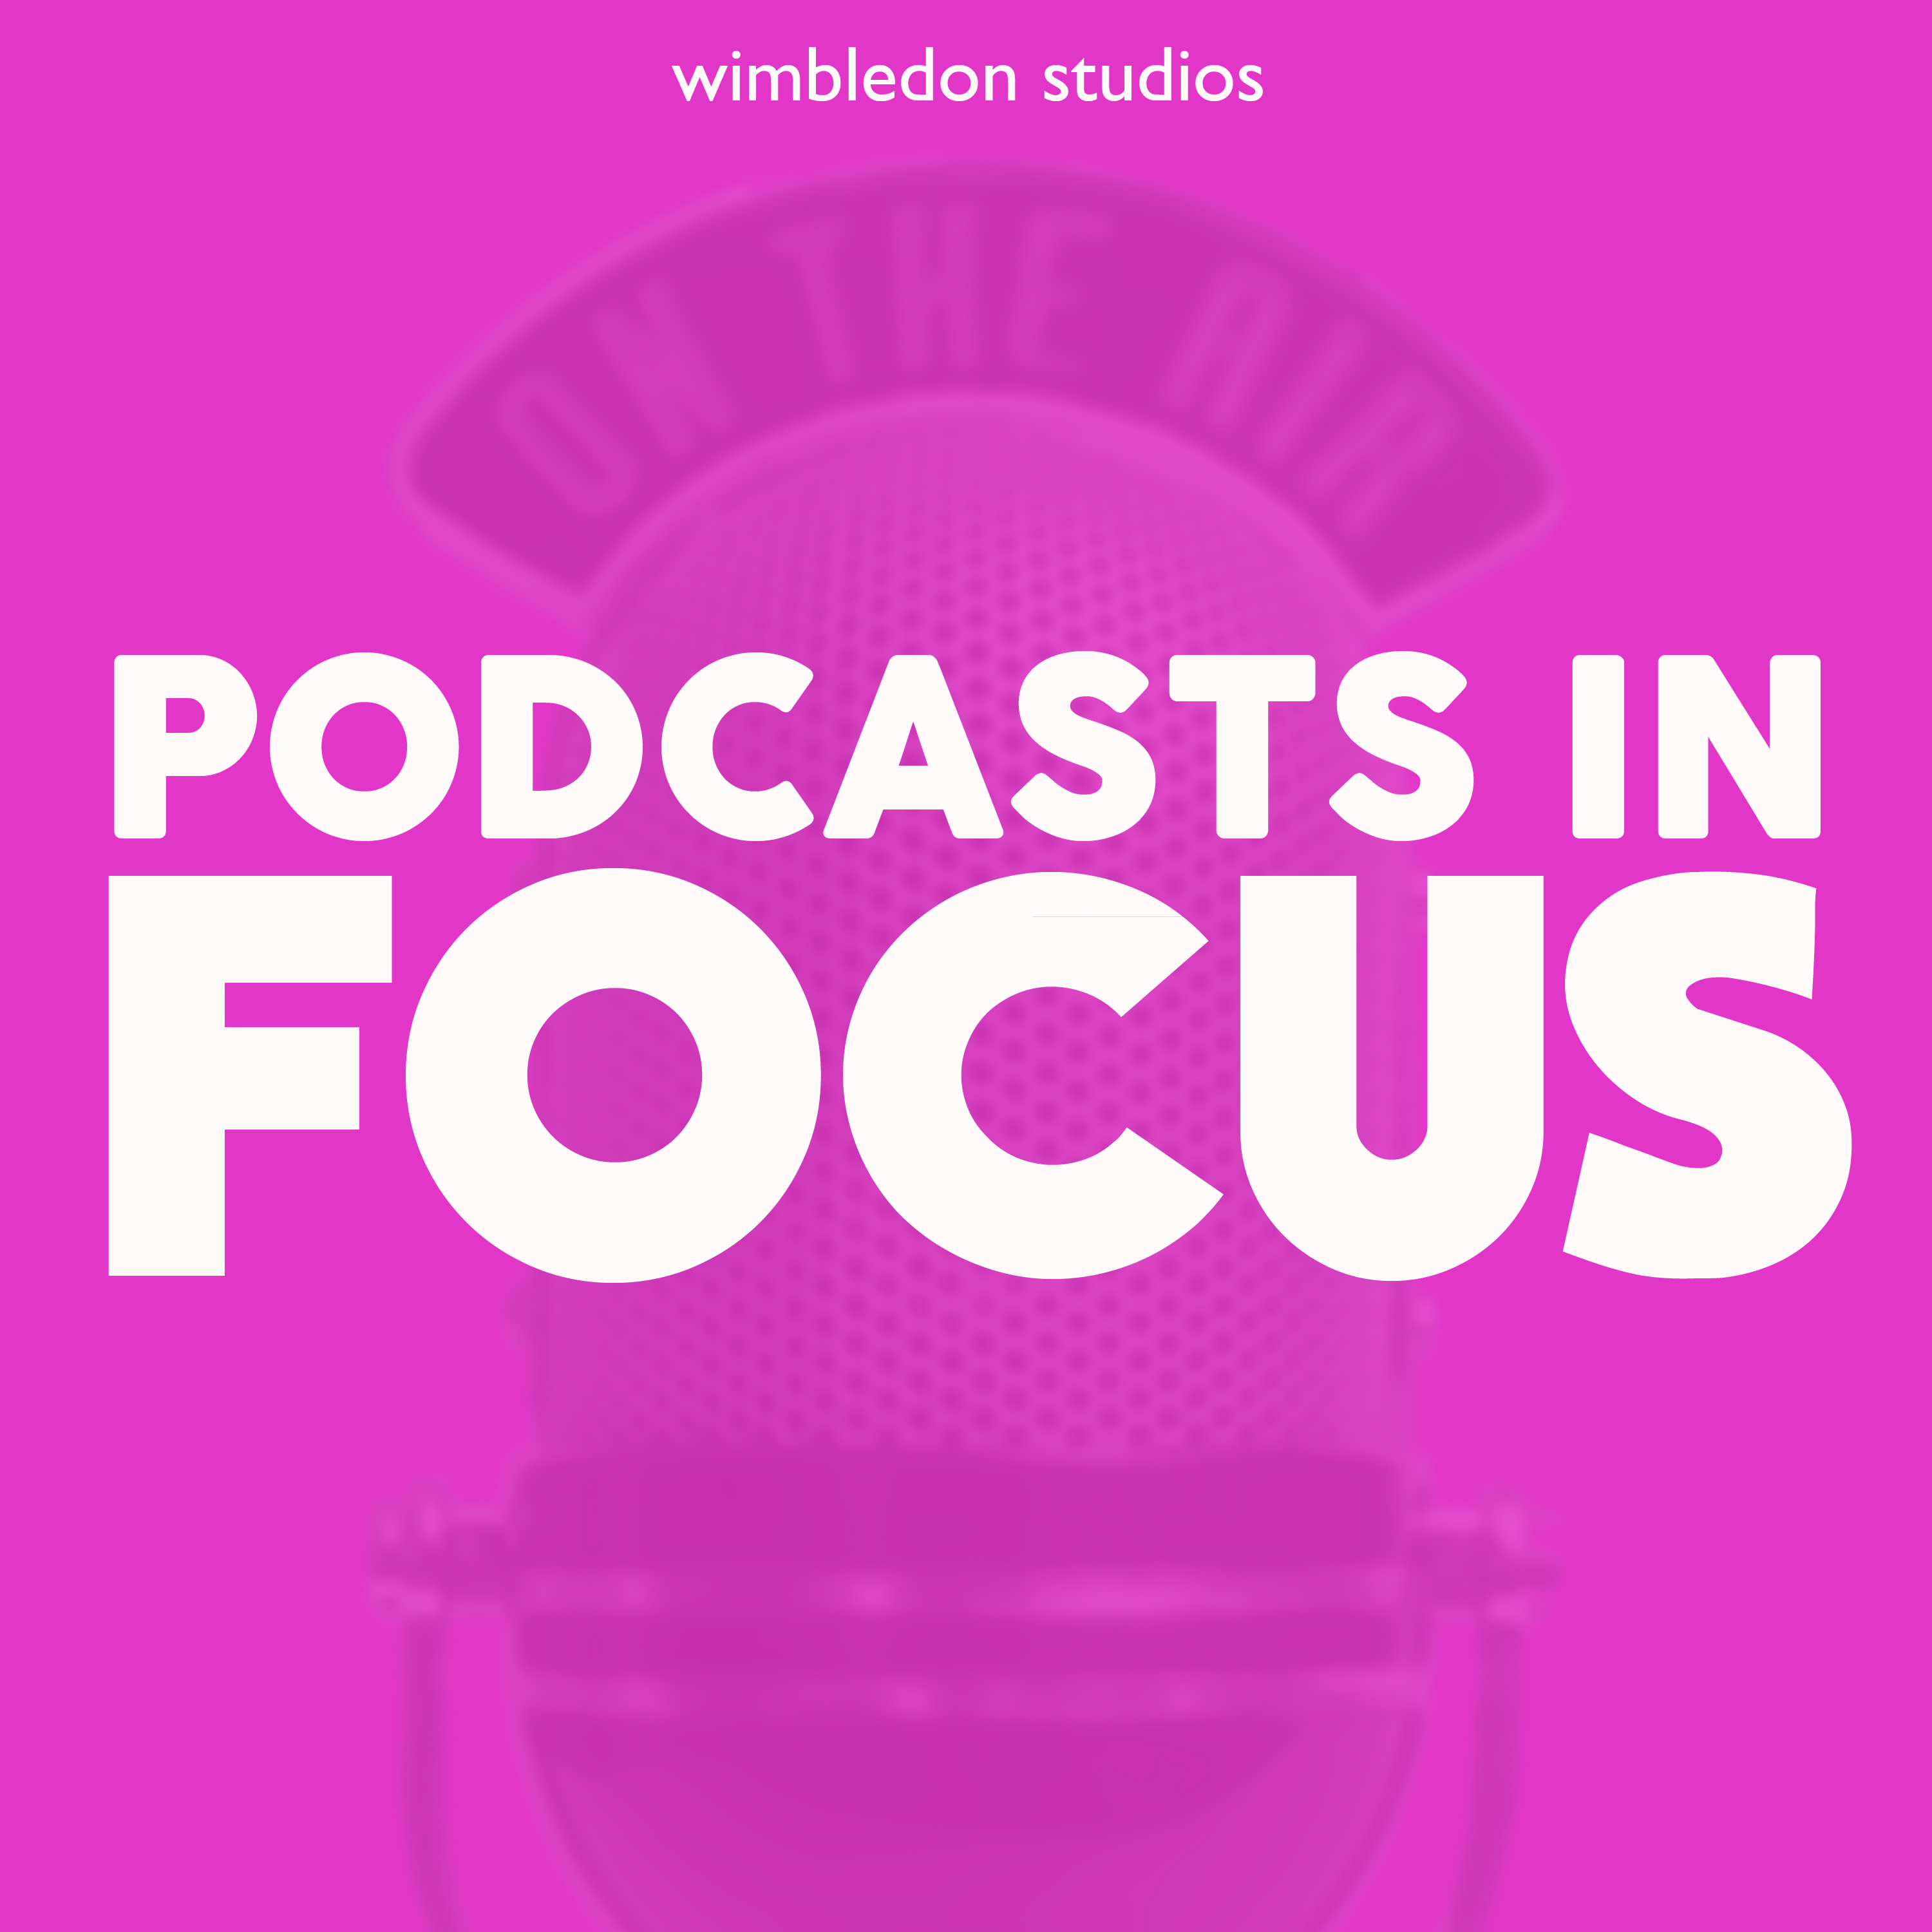 <![CDATA[Podcasts in Focus]]>